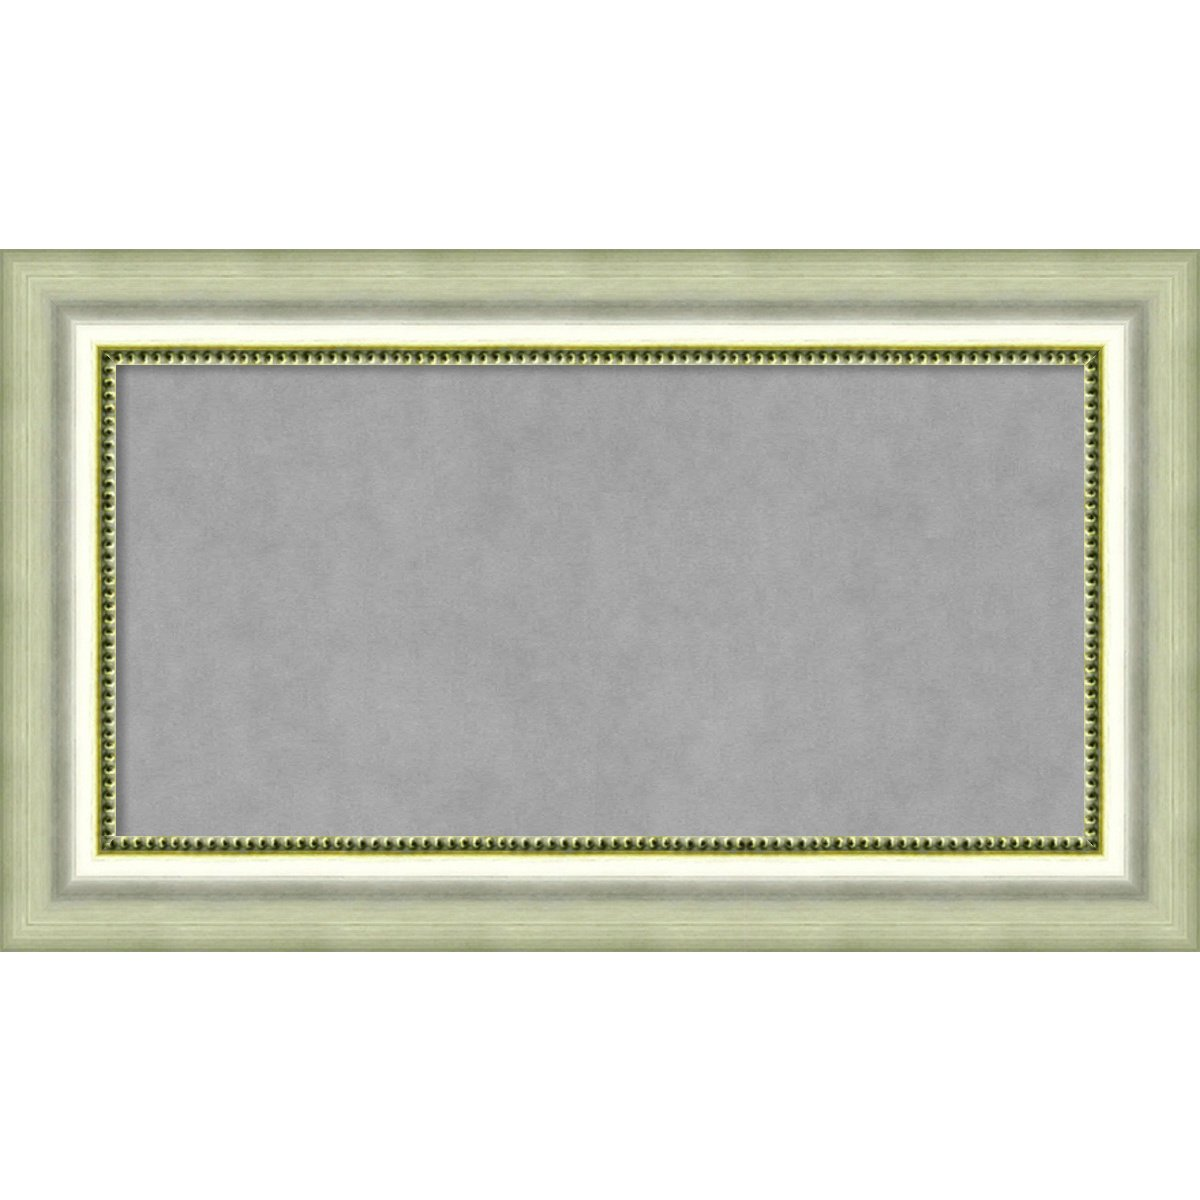 Outer Size 15 x 15 Parisian Silver Framed Magnetic Boards Amanti Art Small Square